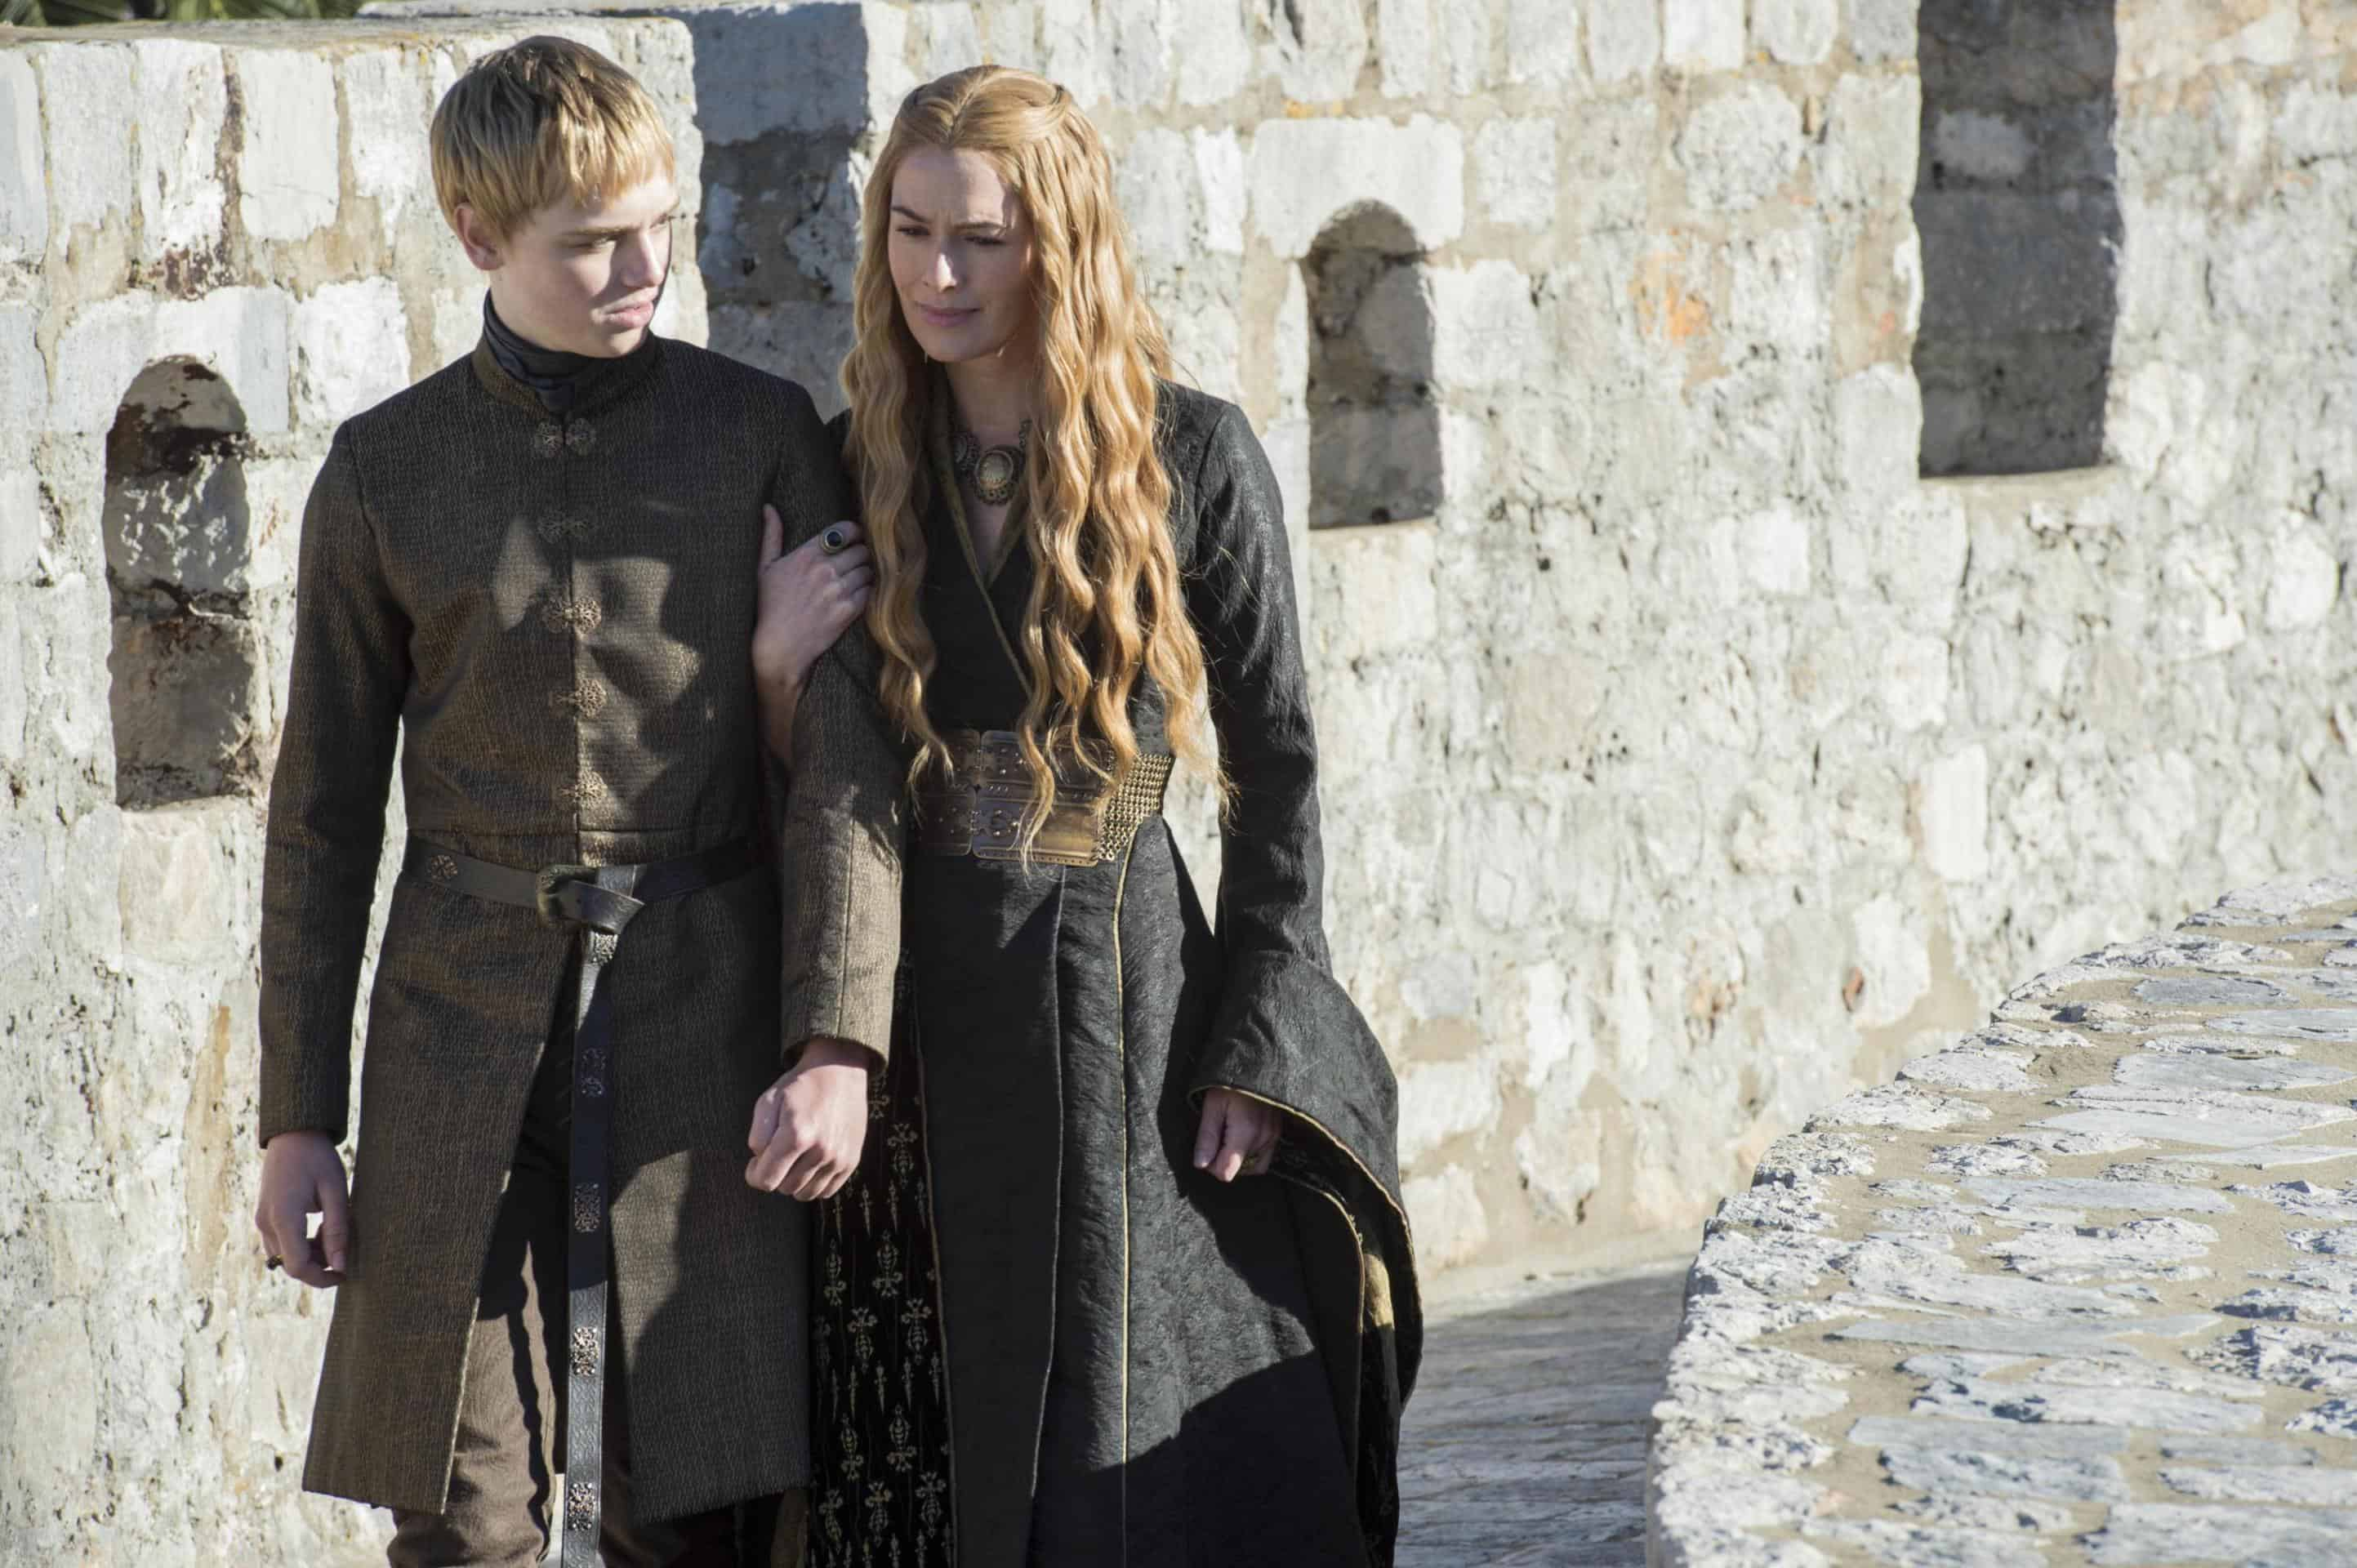 Game-of-Thrones-Season-5-Tommen-and-Cersei